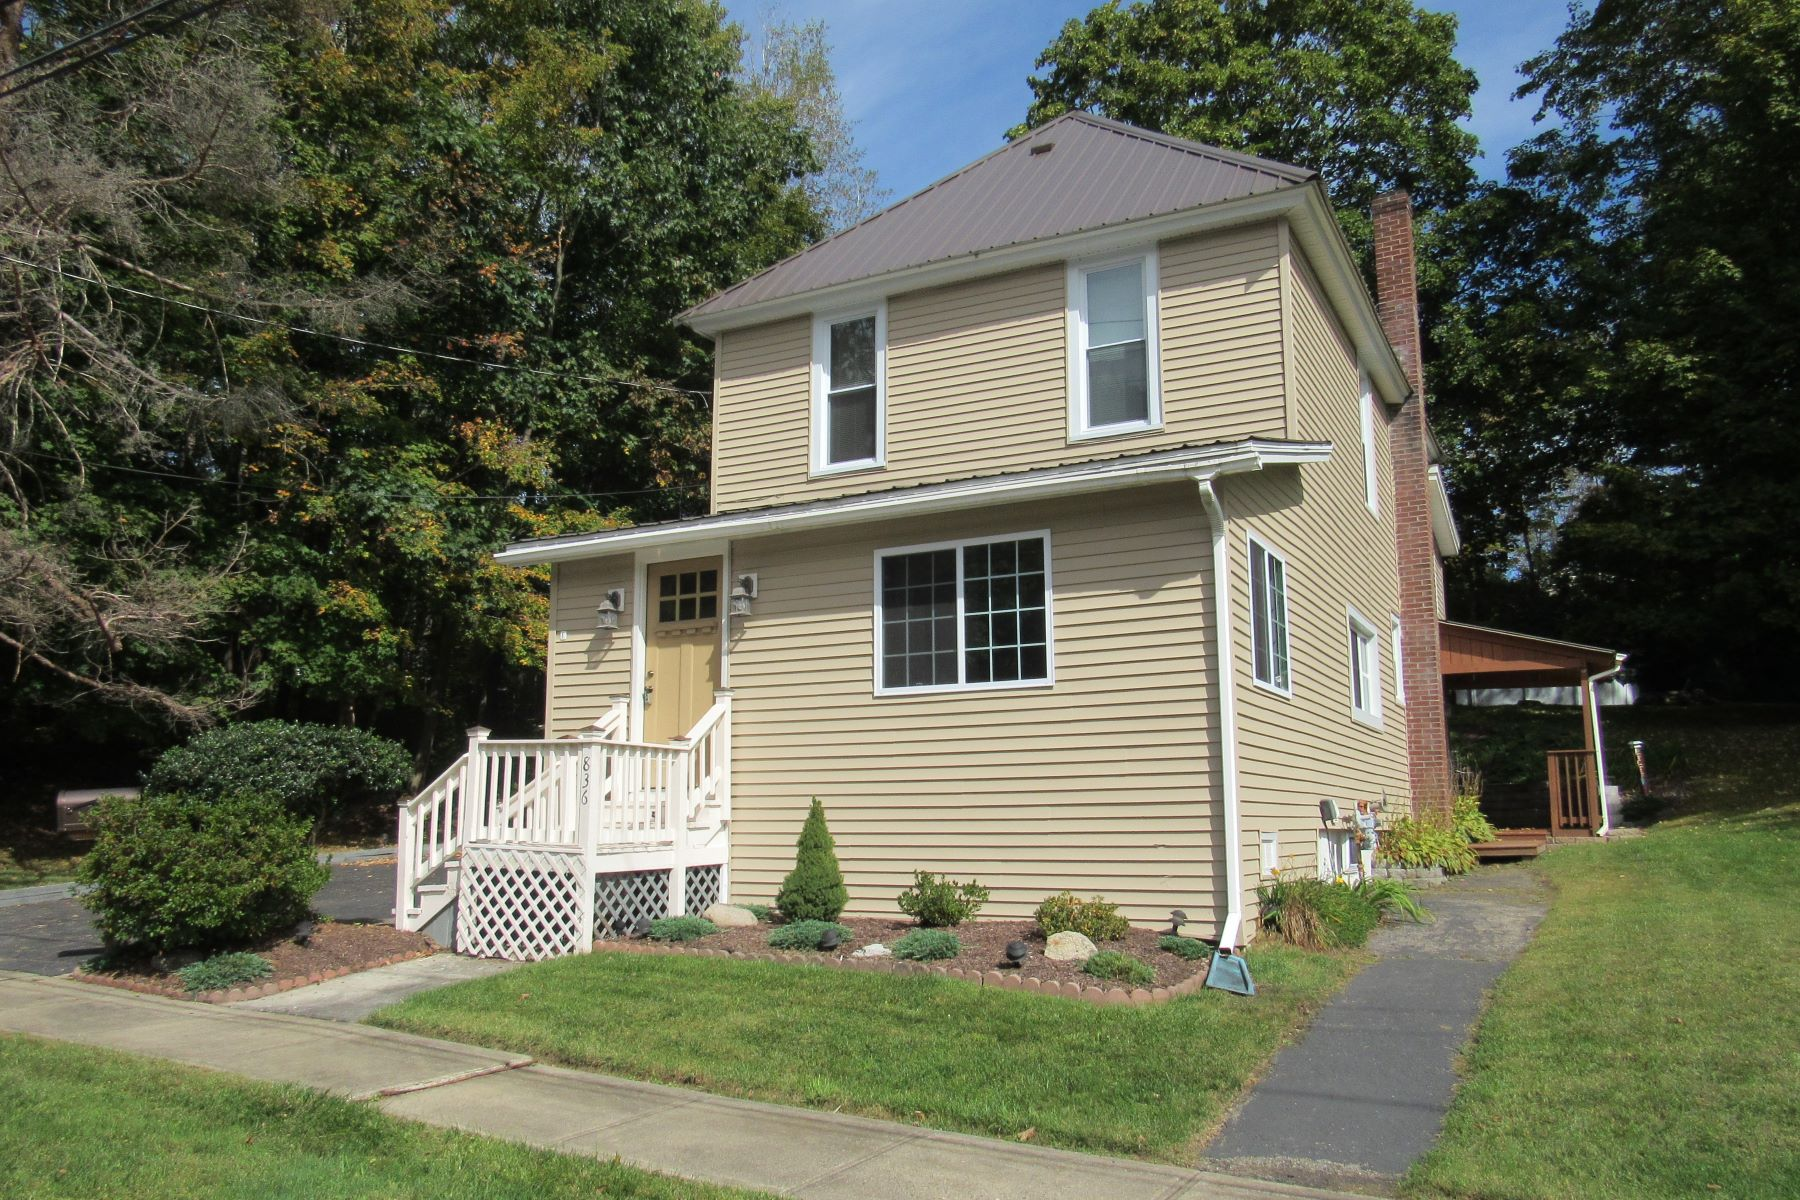 Single Family Homes for Sale at Move In Ready Spacious Home 836 Glebe St Johnstown, New York 12095 United States